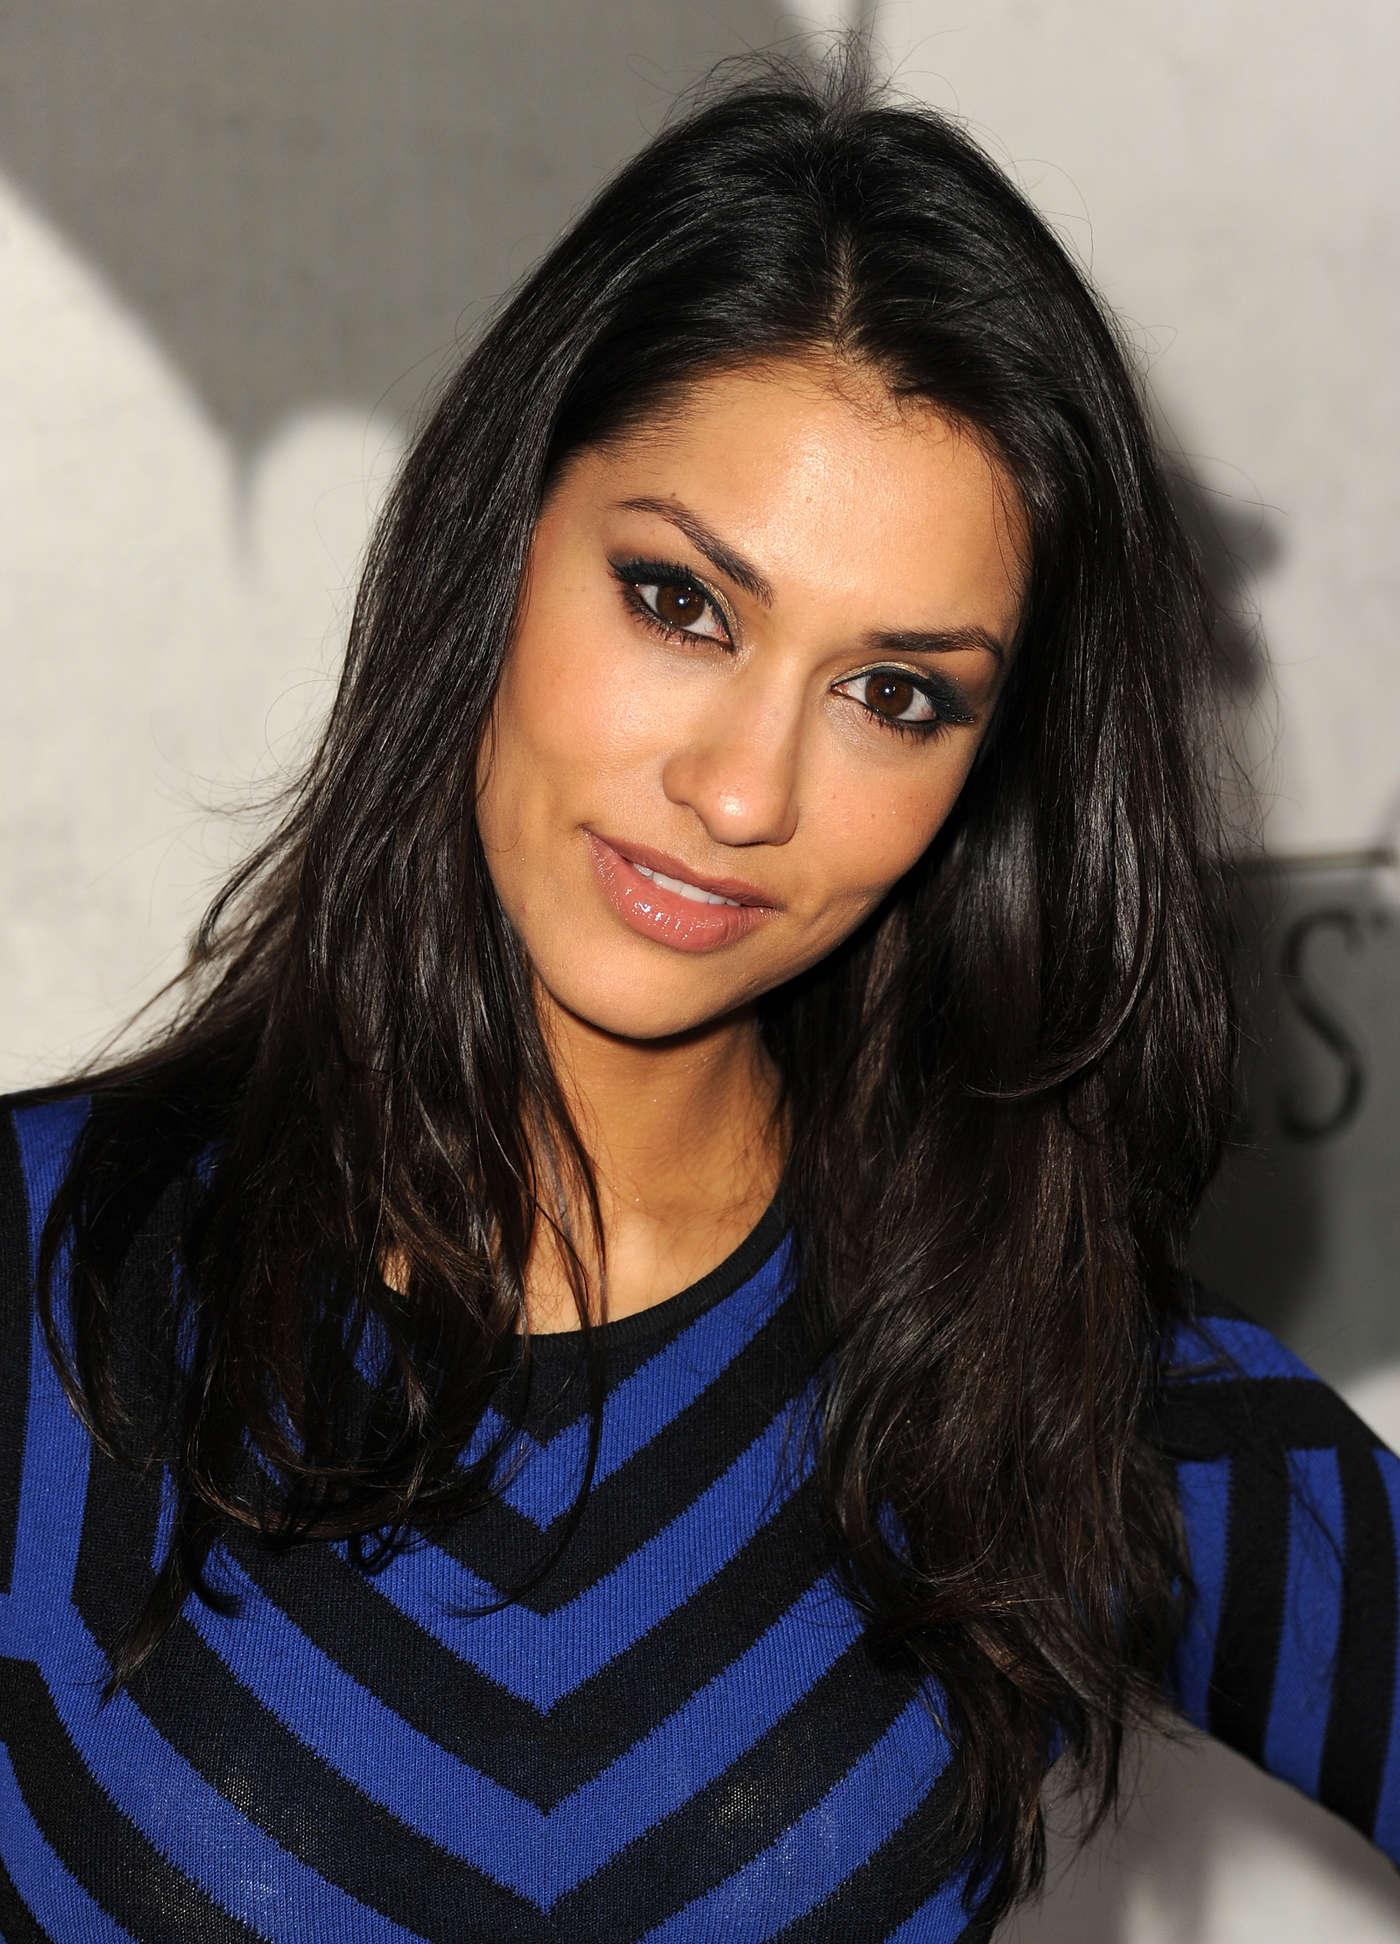 Janina Gavankar Game of Thrones Season premiere in Los Angeles